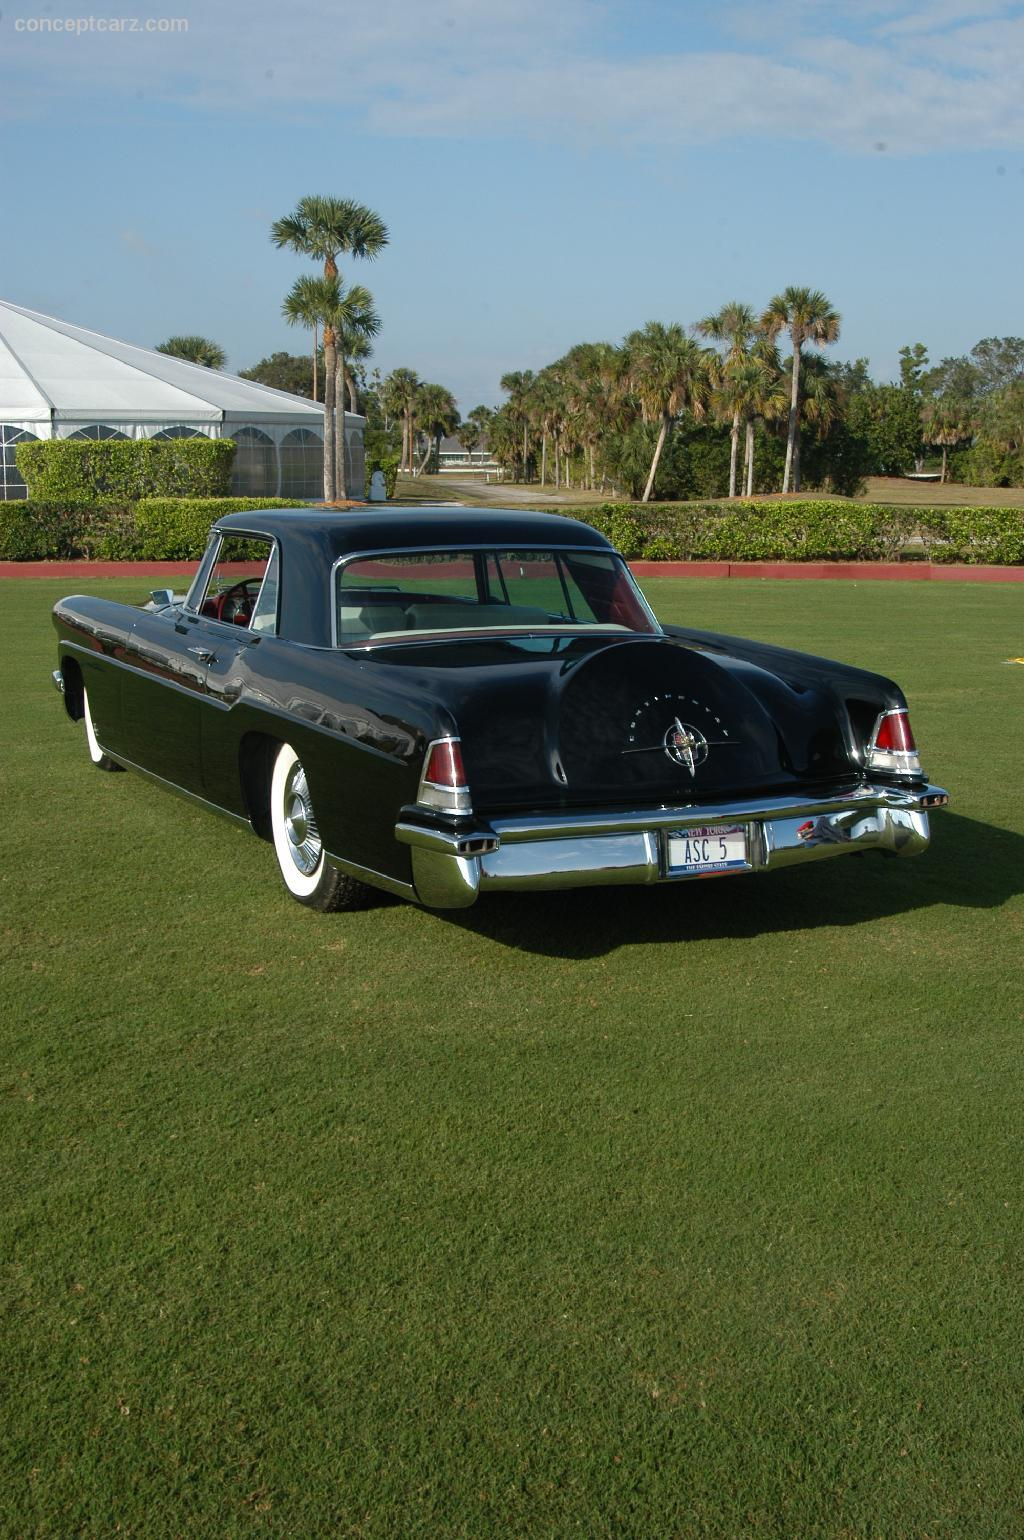 1957 lincoln continental mark ii at the palm beach international concours d. Black Bedroom Furniture Sets. Home Design Ideas